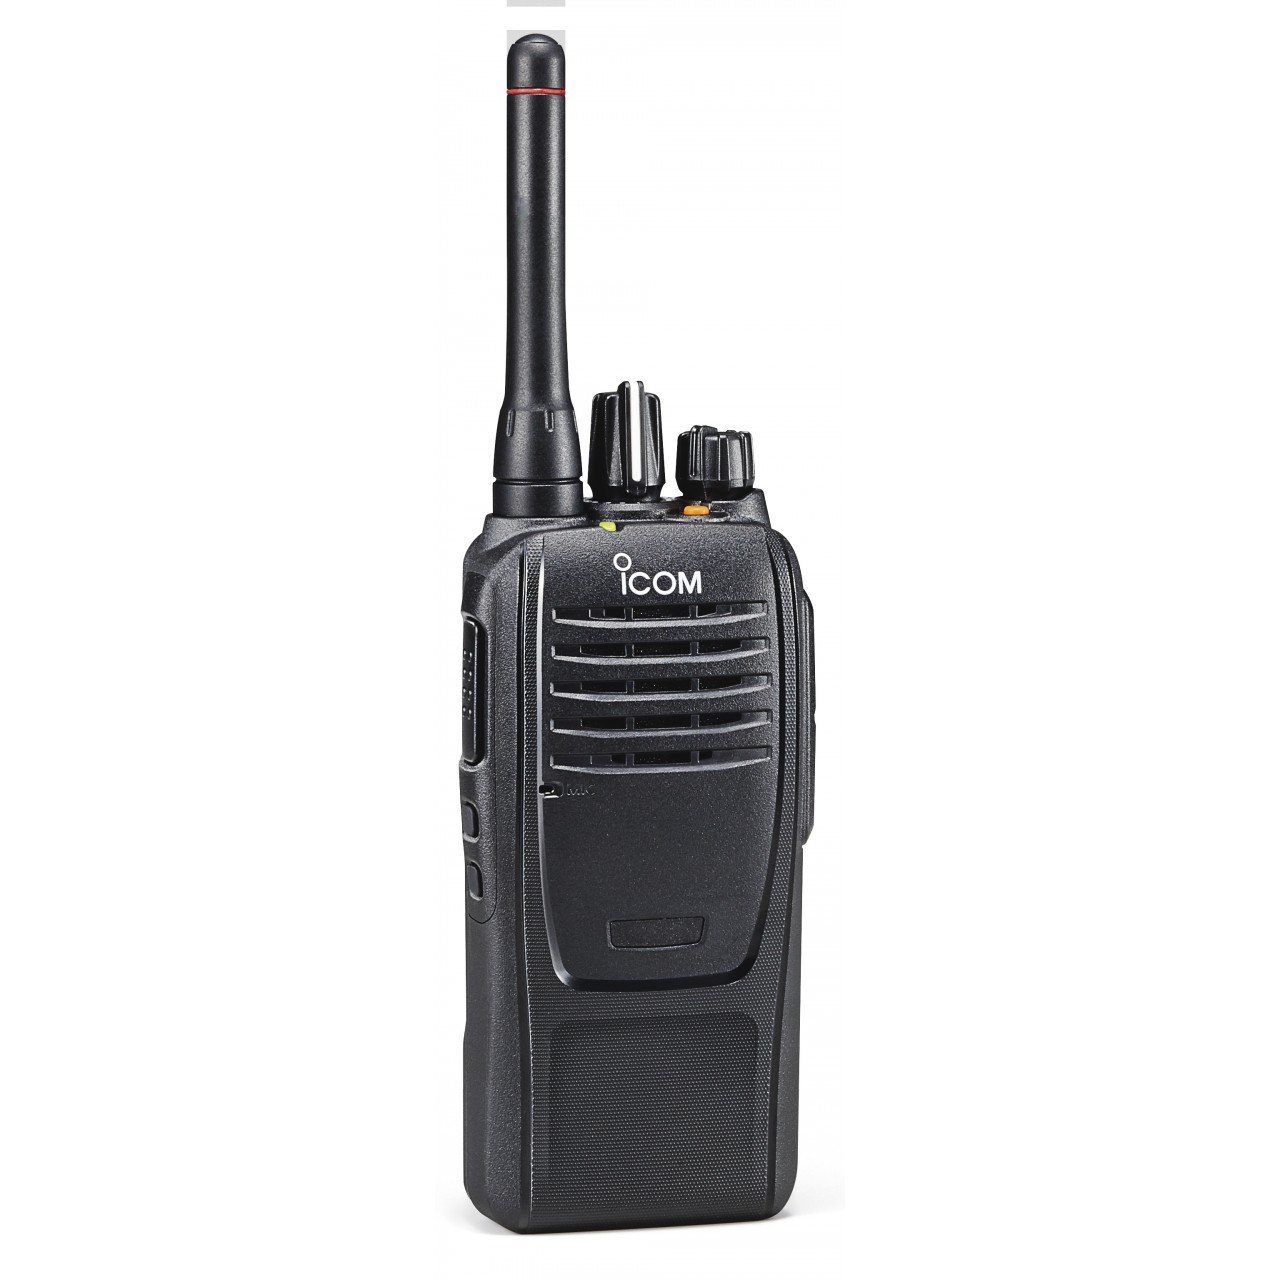 IC-F1100D Handhelds - ICOM